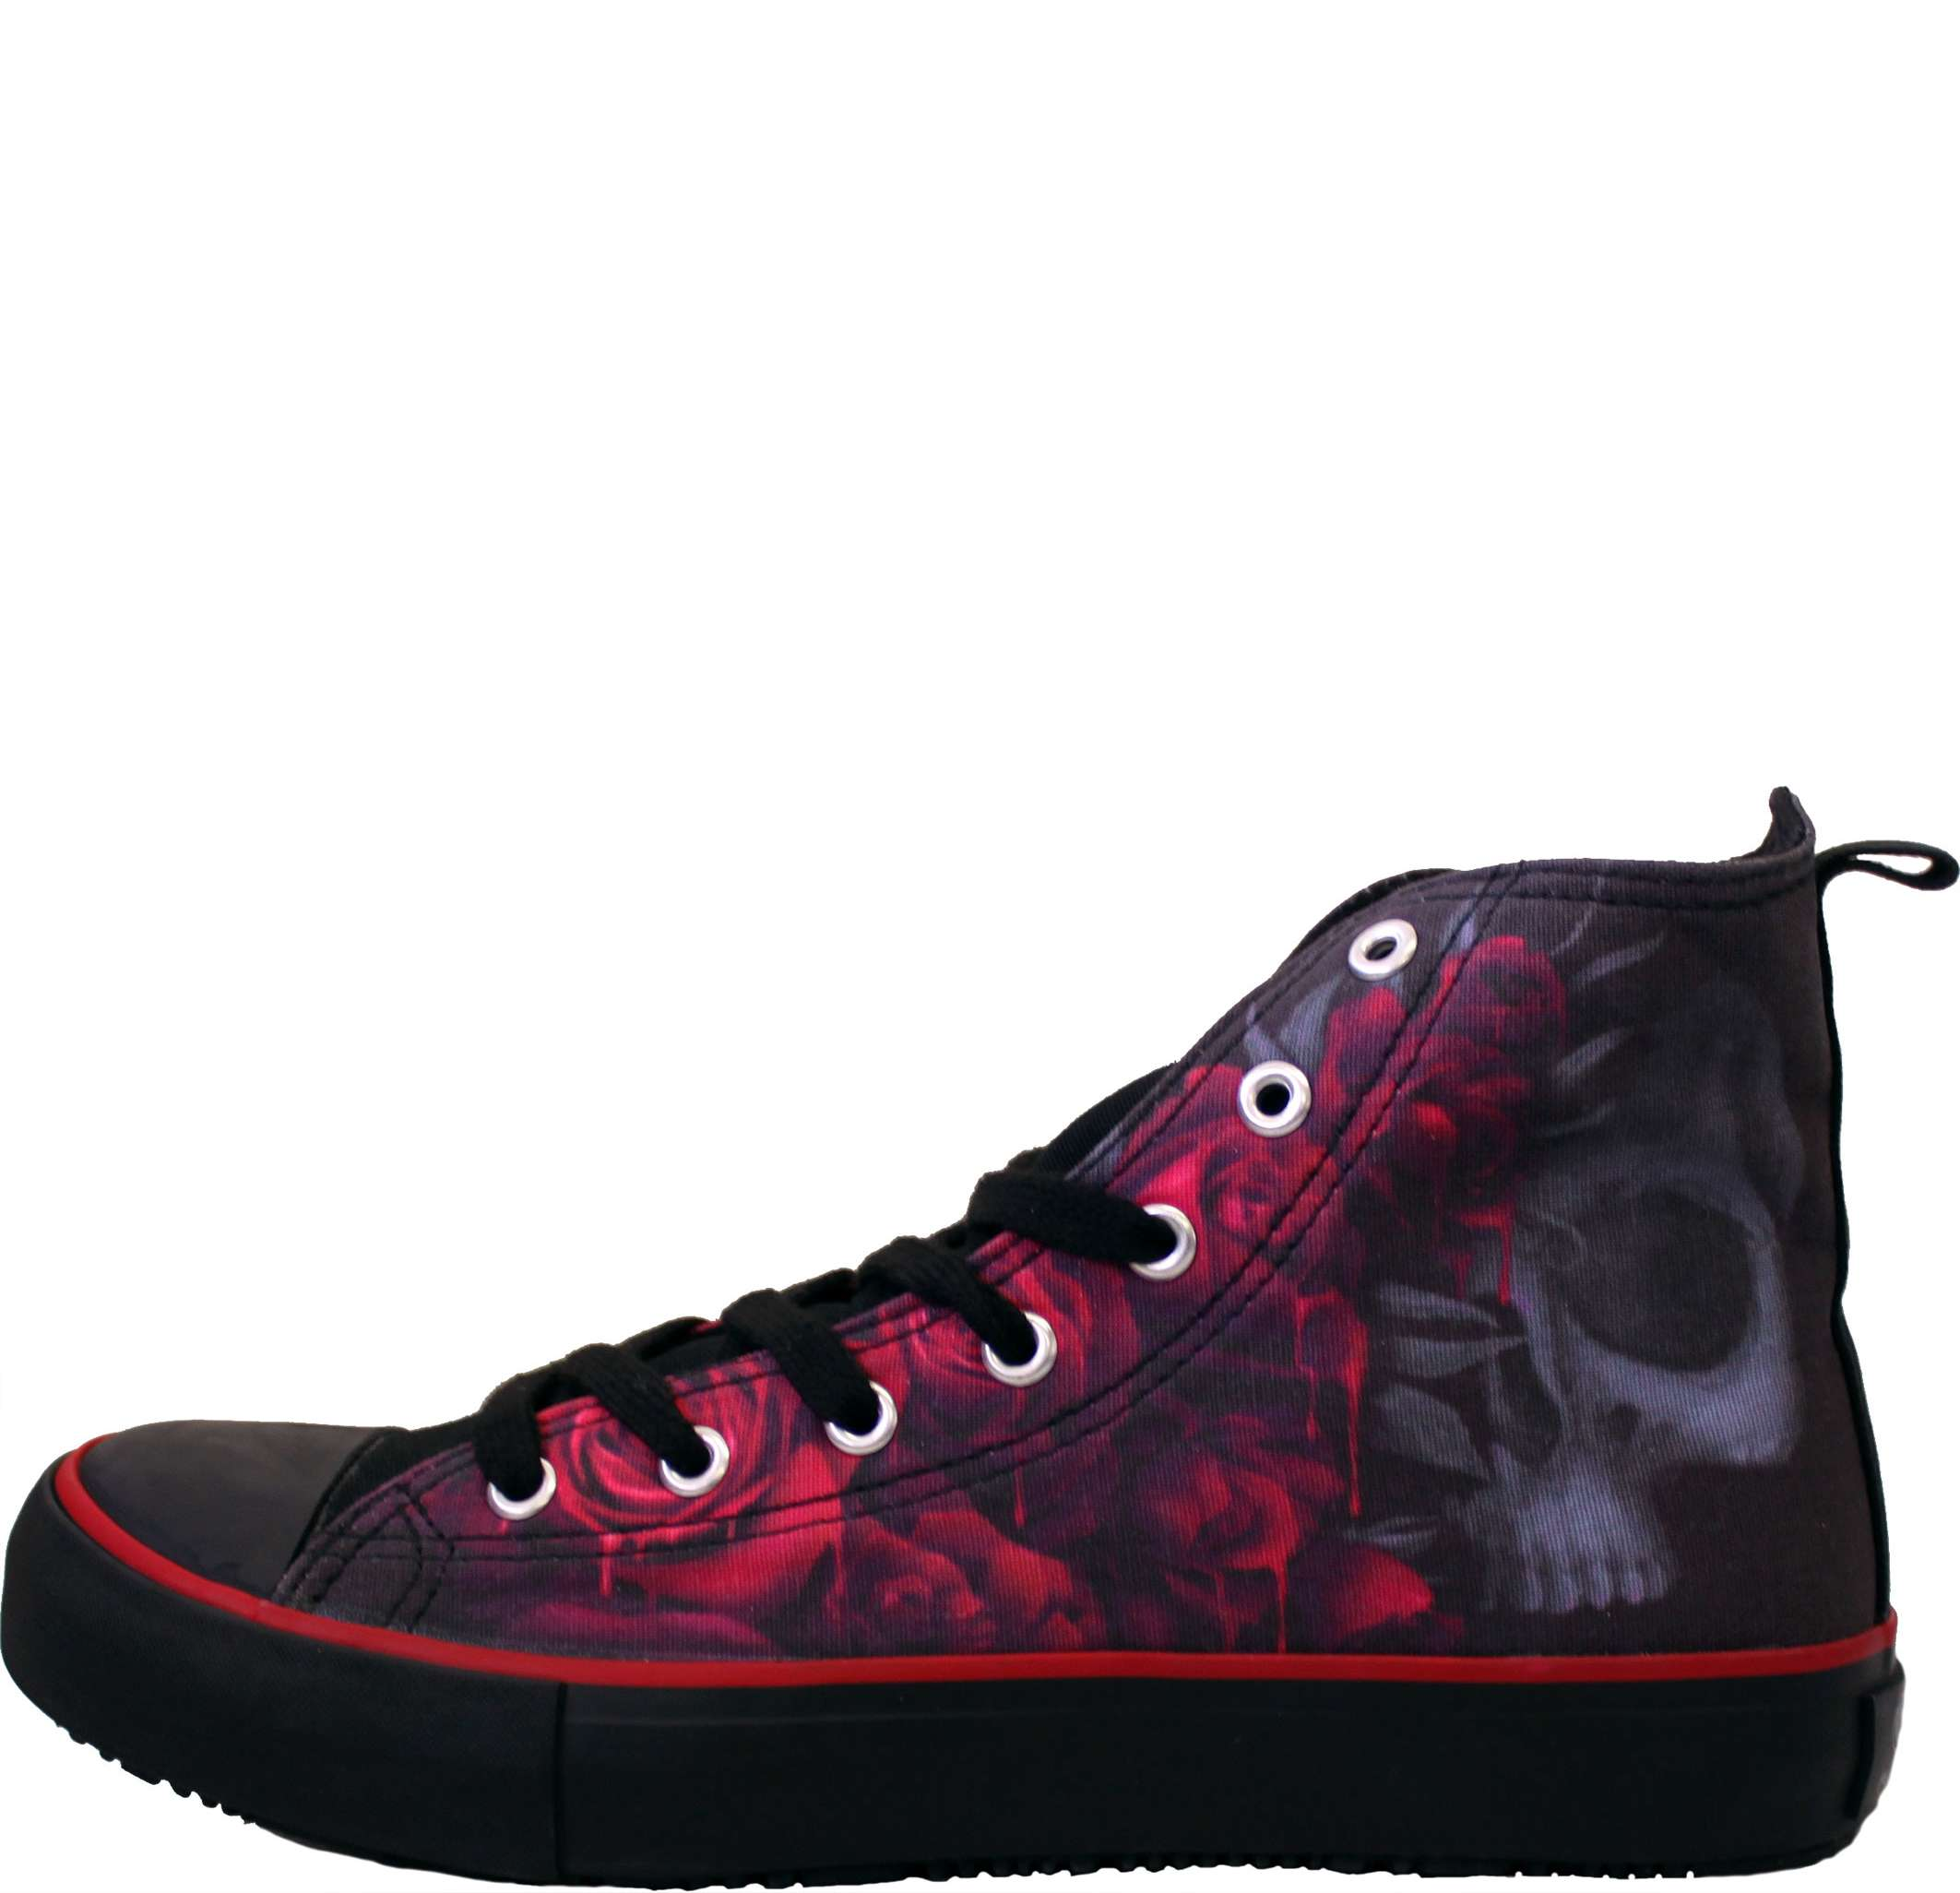 8b49ddc2dc3 BLOOD ROSE - Sneakers - Ladies High Top Laceup - Spiral Direct - Black